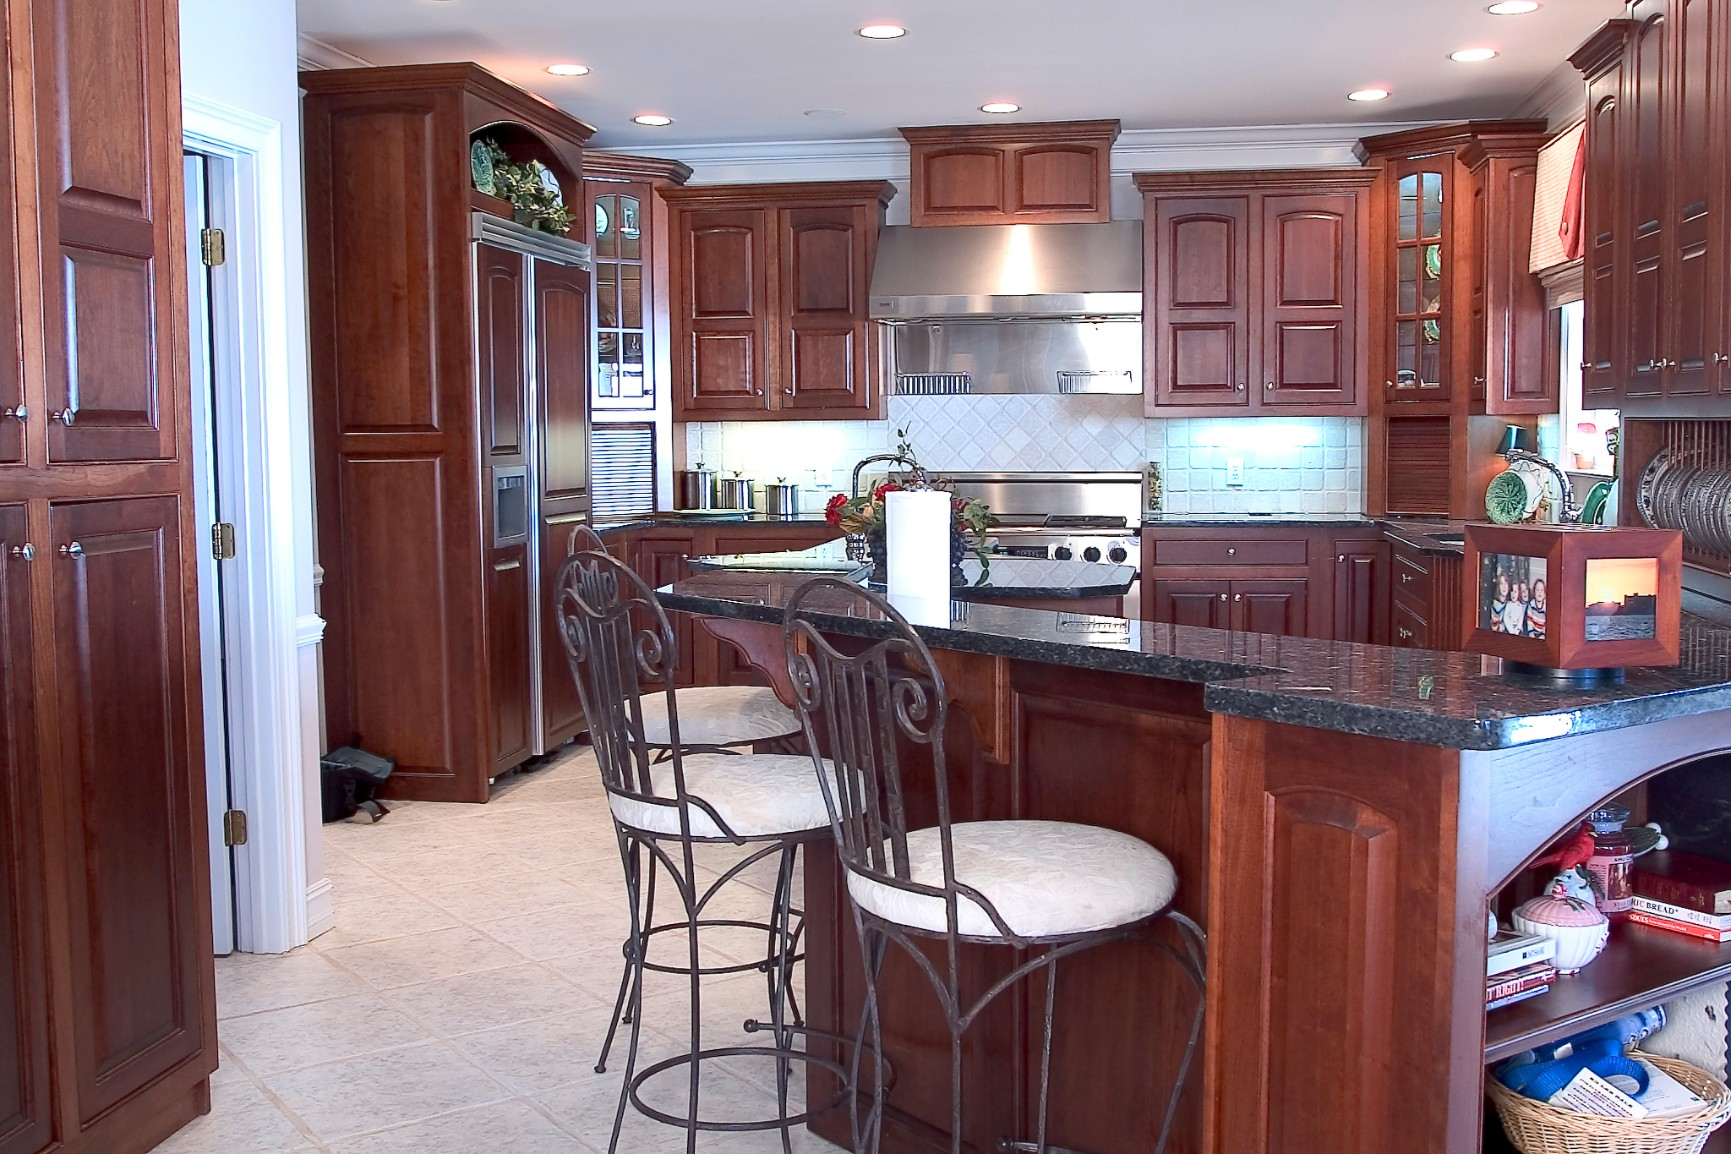 cherry kitchen cabinets with nutmeg finish. Black Bedroom Furniture Sets. Home Design Ideas